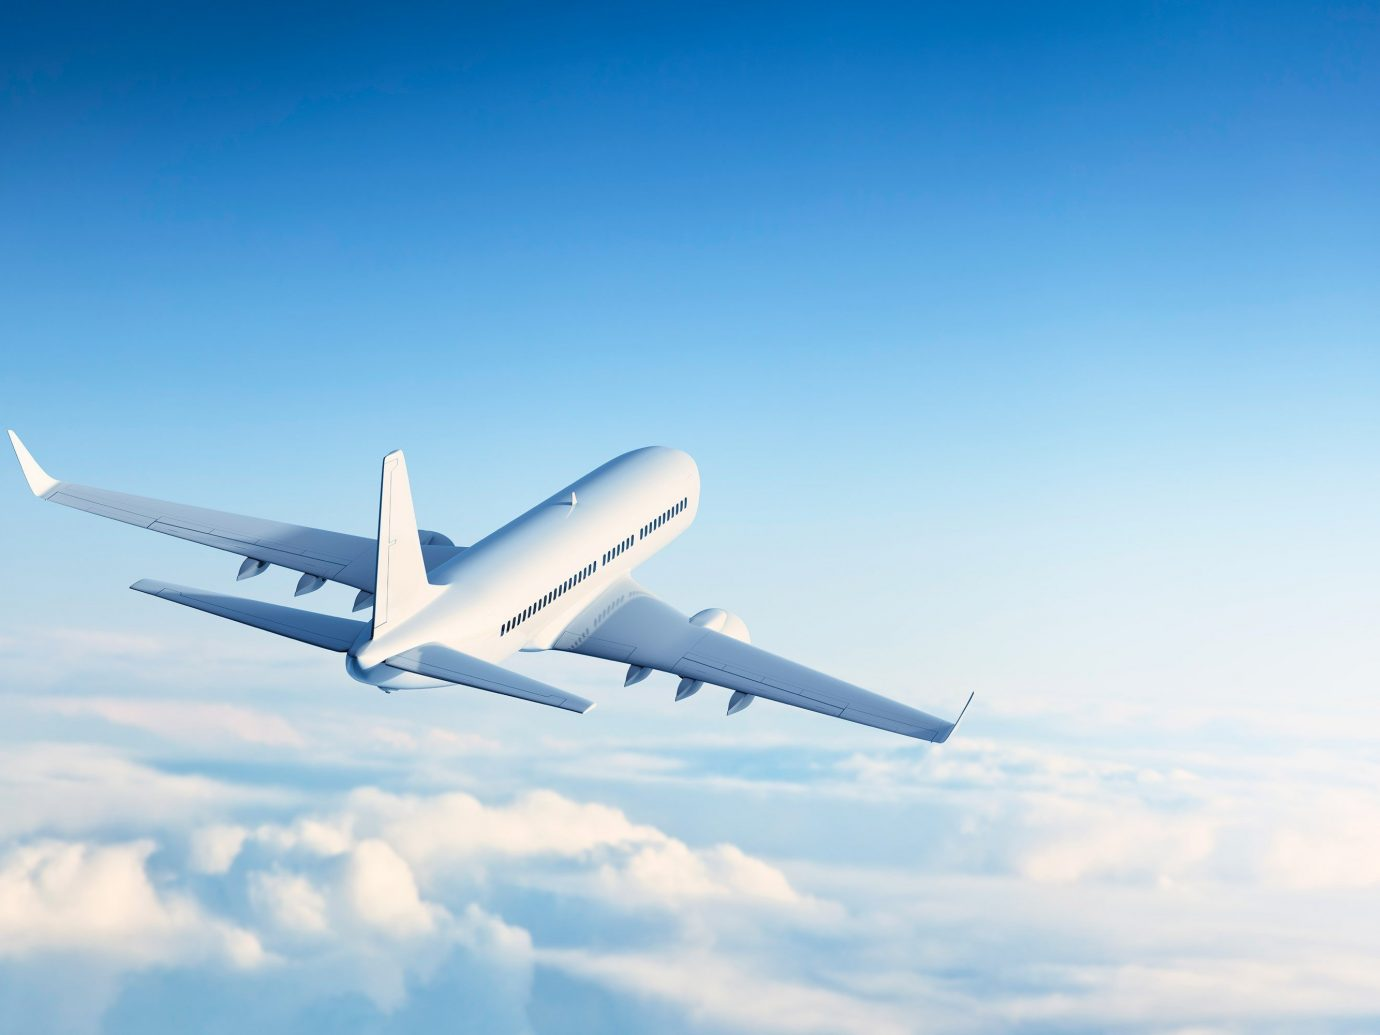 Travel Tips sky plane outdoor flying airline airplane air travel vehicle transport aircraft aviation air atmosphere of earth airliner cloudy flight aerospace engineering jet takeoff wide body aircraft clouds wing blue boeing 777 high land day